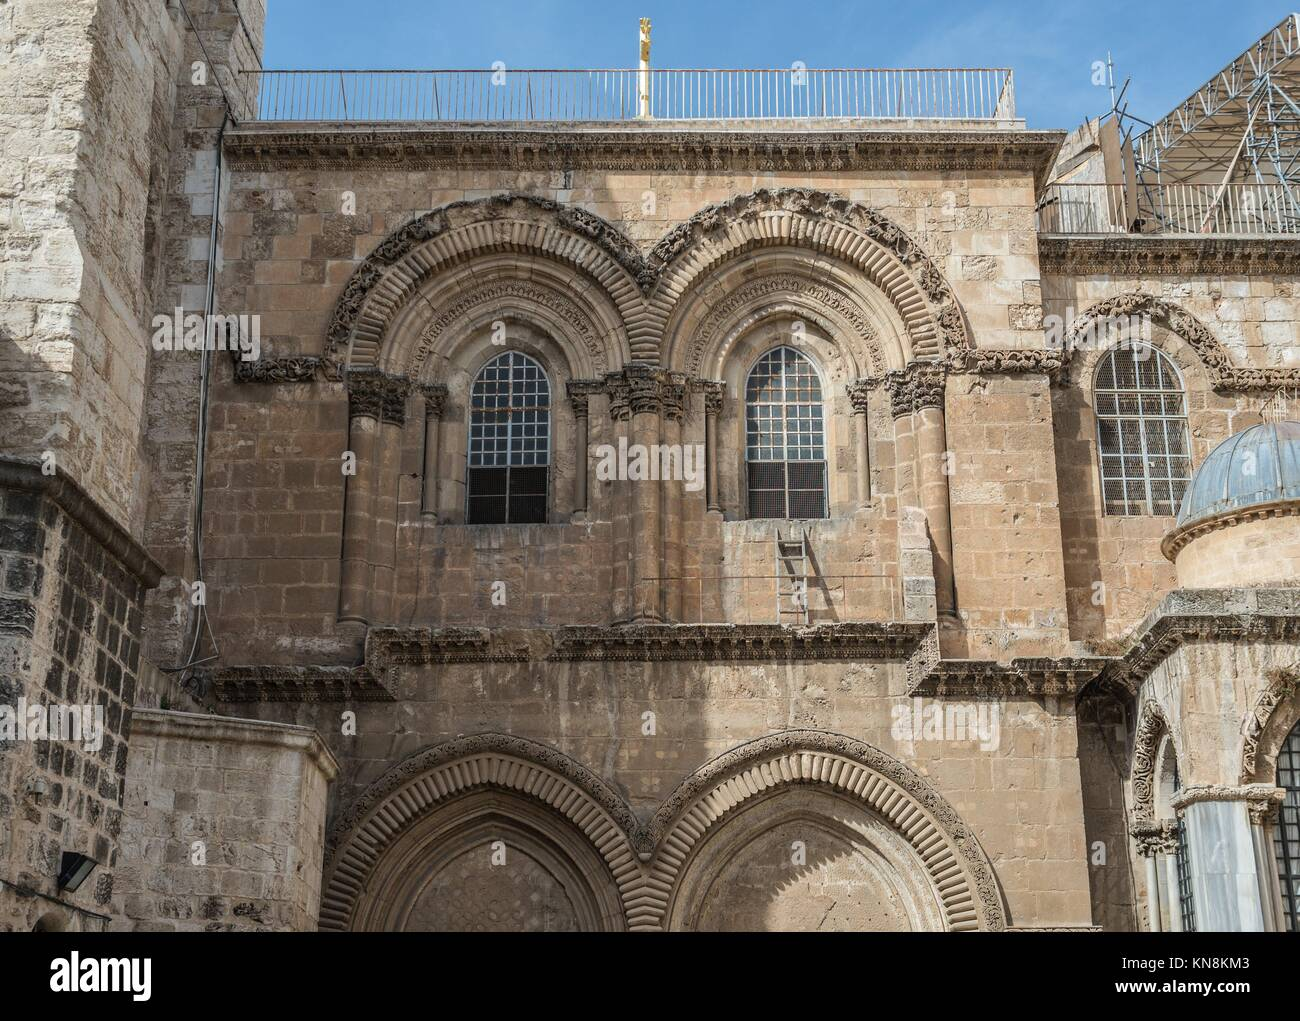 Church of the Holy Sepulchre in Jerusalem, Israel. Stock Photo